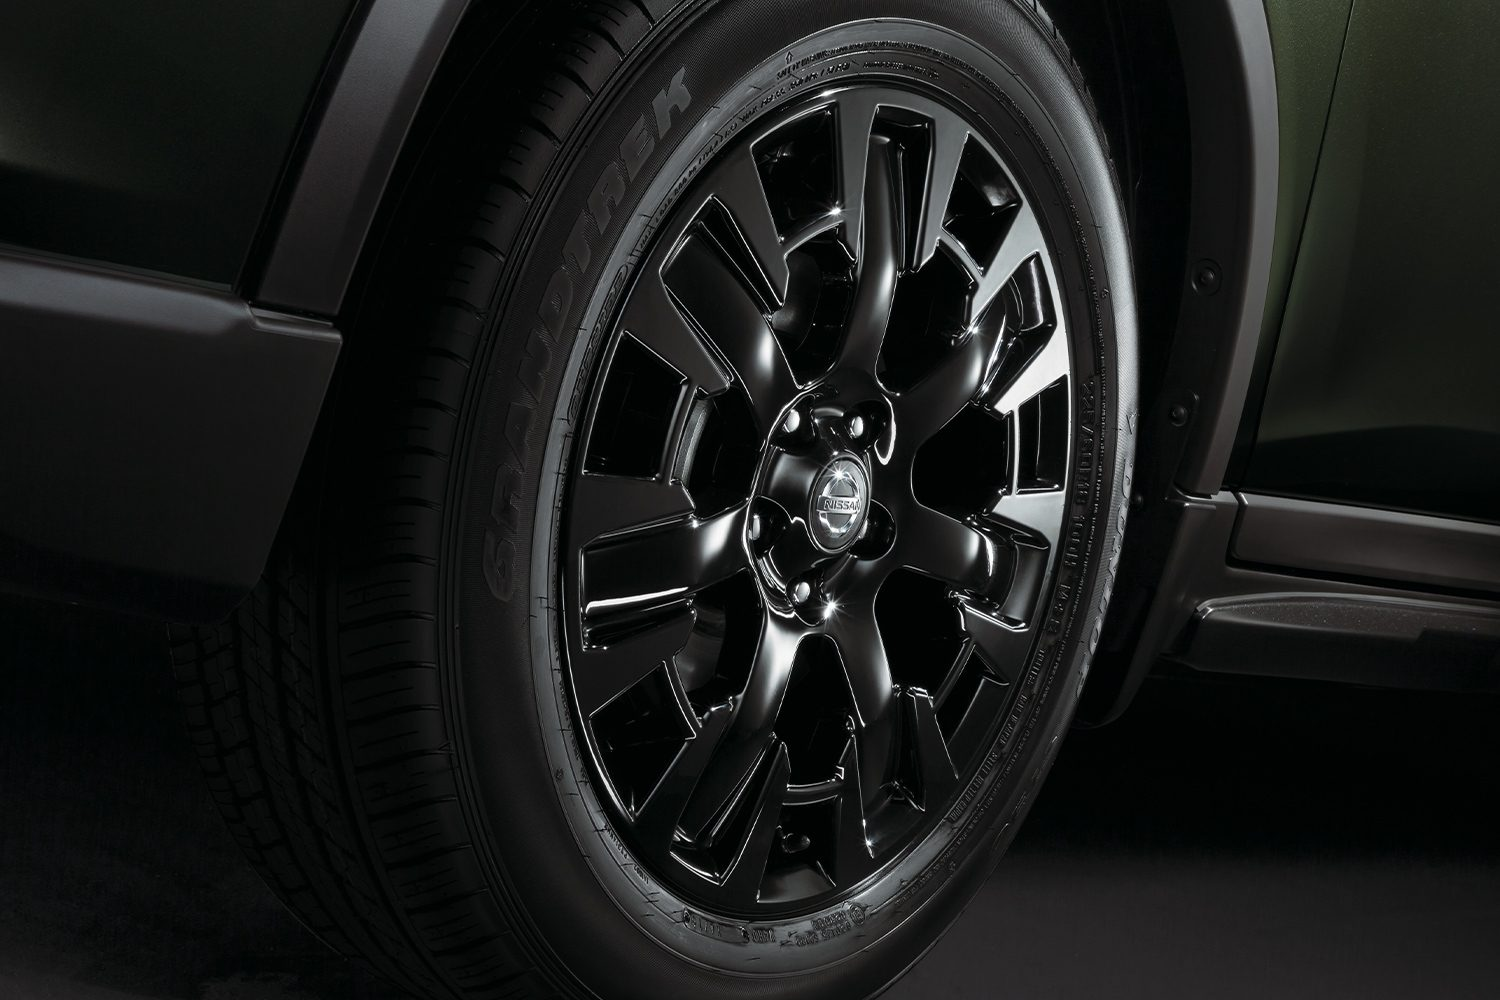 THE NEW 2020 NISSAN X-TREMER BLACK ALLOY WHEELS